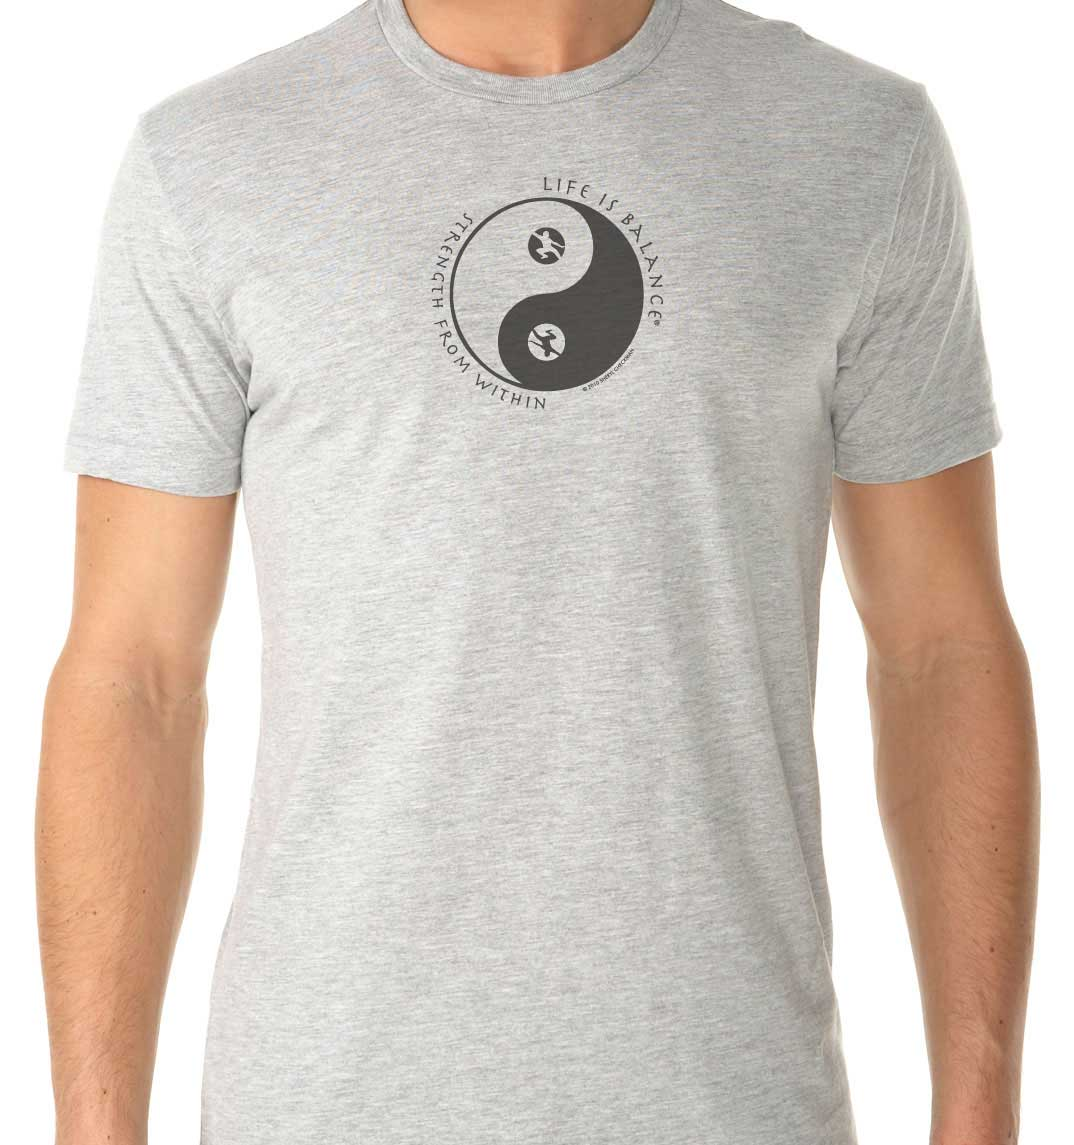 Strength from Within Men's/Unisex T-shirt (Heather Gray/Black))